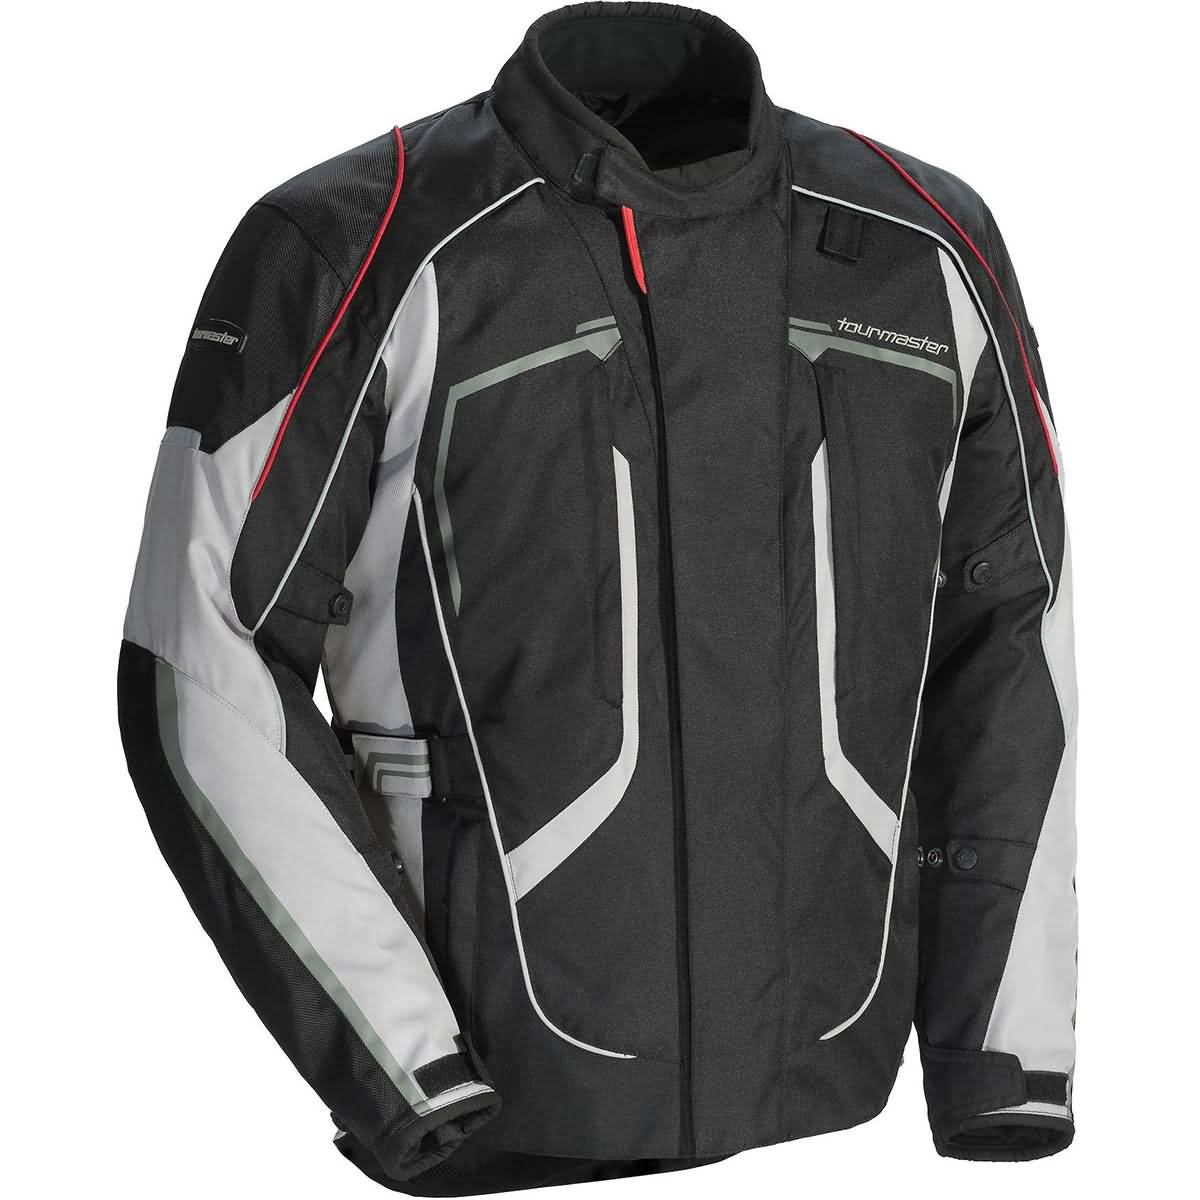 Tour Master Advanced Women's Street Jackets (USED LIKE NEW / LAST CALL SALE)